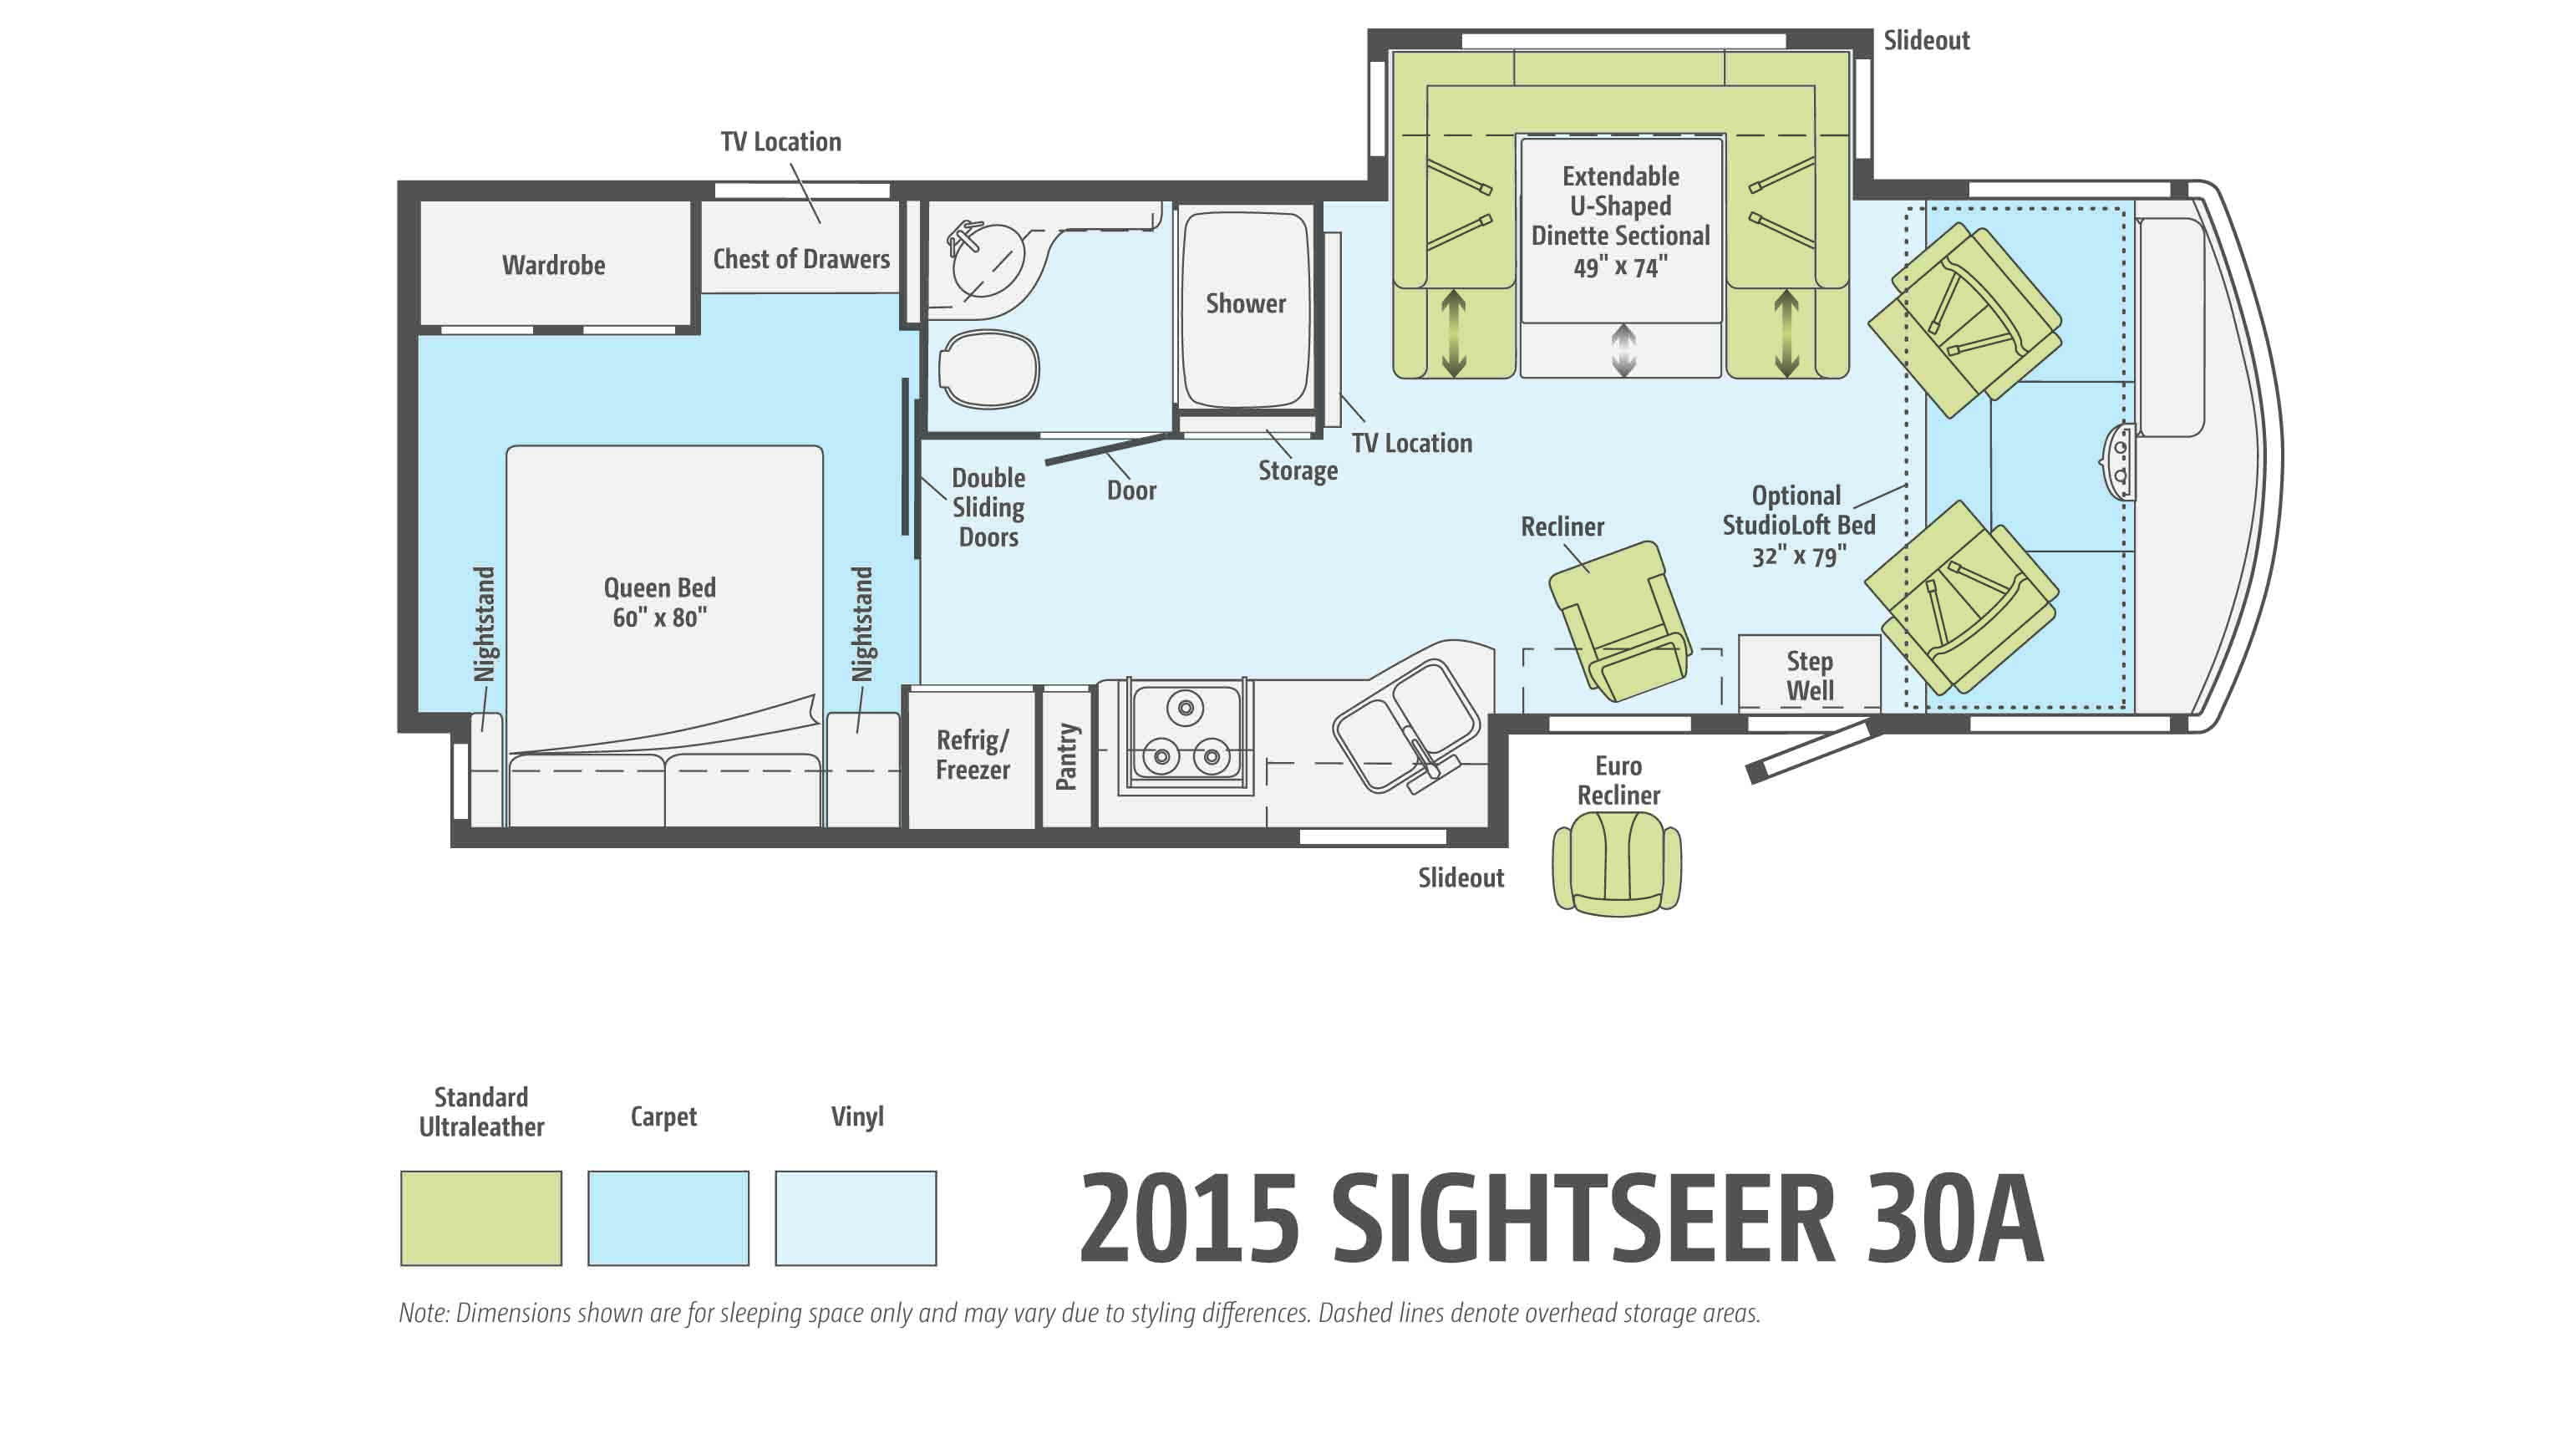 The Winnebago Sightseer floorplan 30A offers innovative features in a compact size.